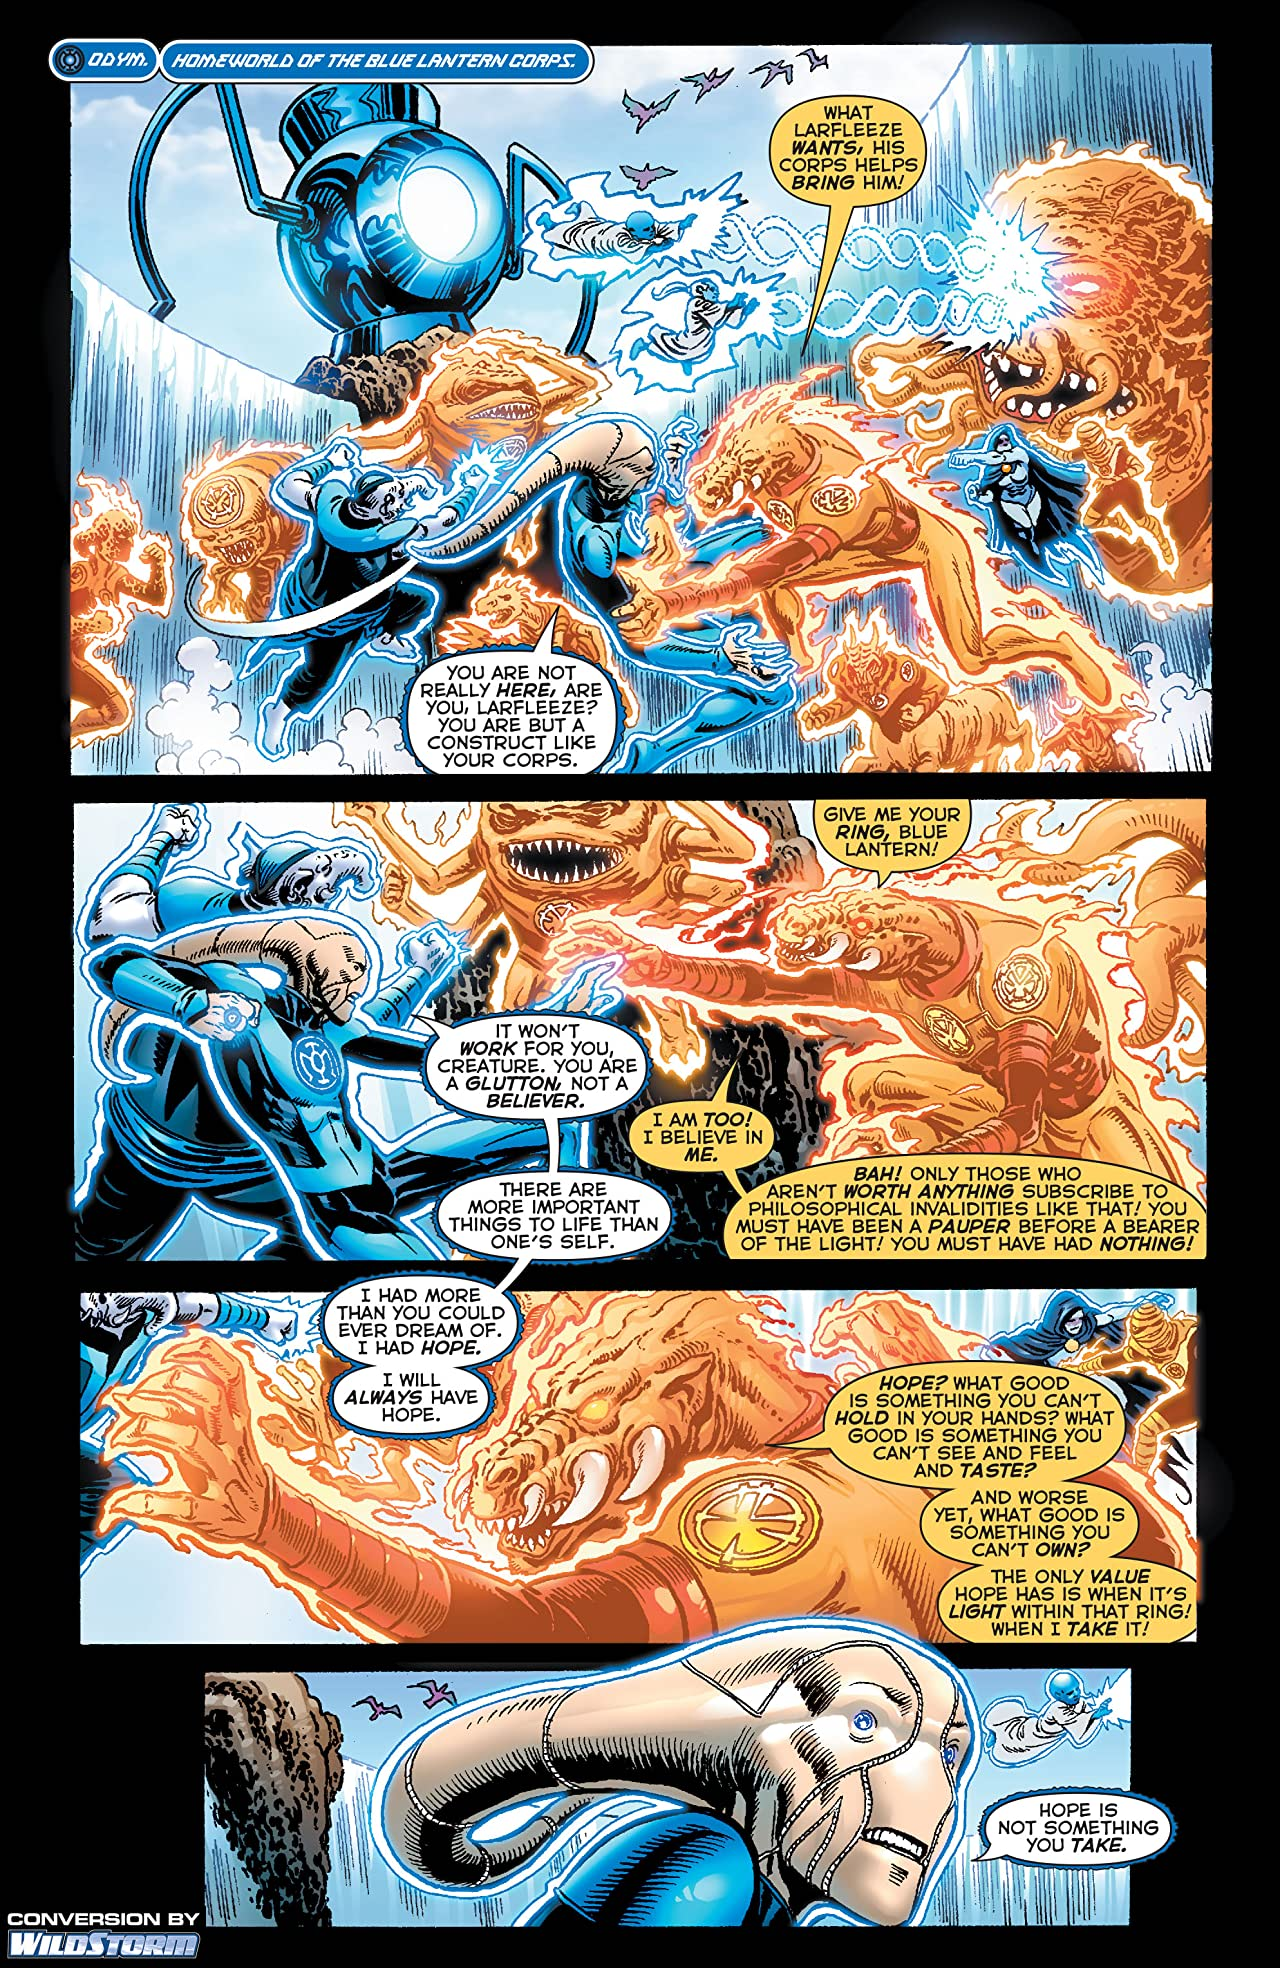 Blackest Night: Tales of the Corps #1 (of 3)